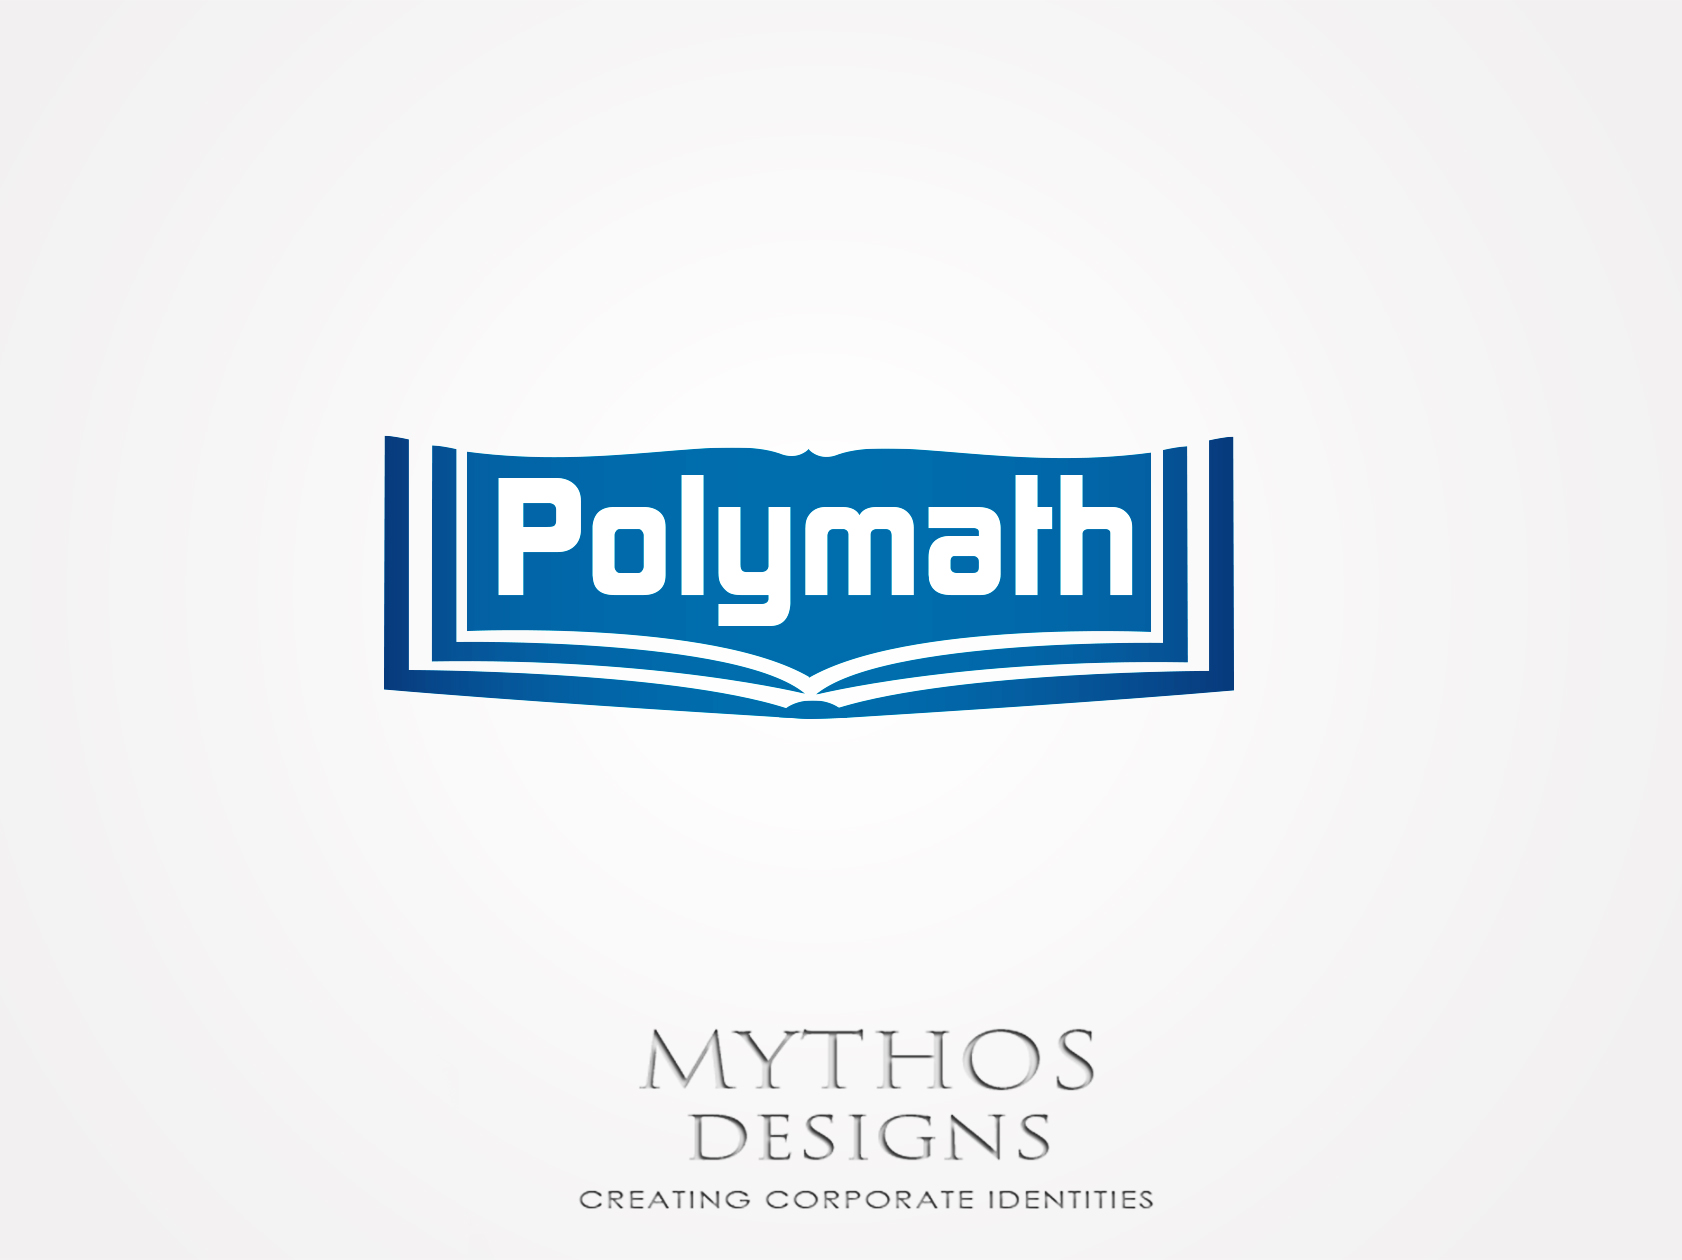 Logo Design by Mythos Designs - Entry No. 37 in the Logo Design Contest Imaginative Logo Design for Polymath.